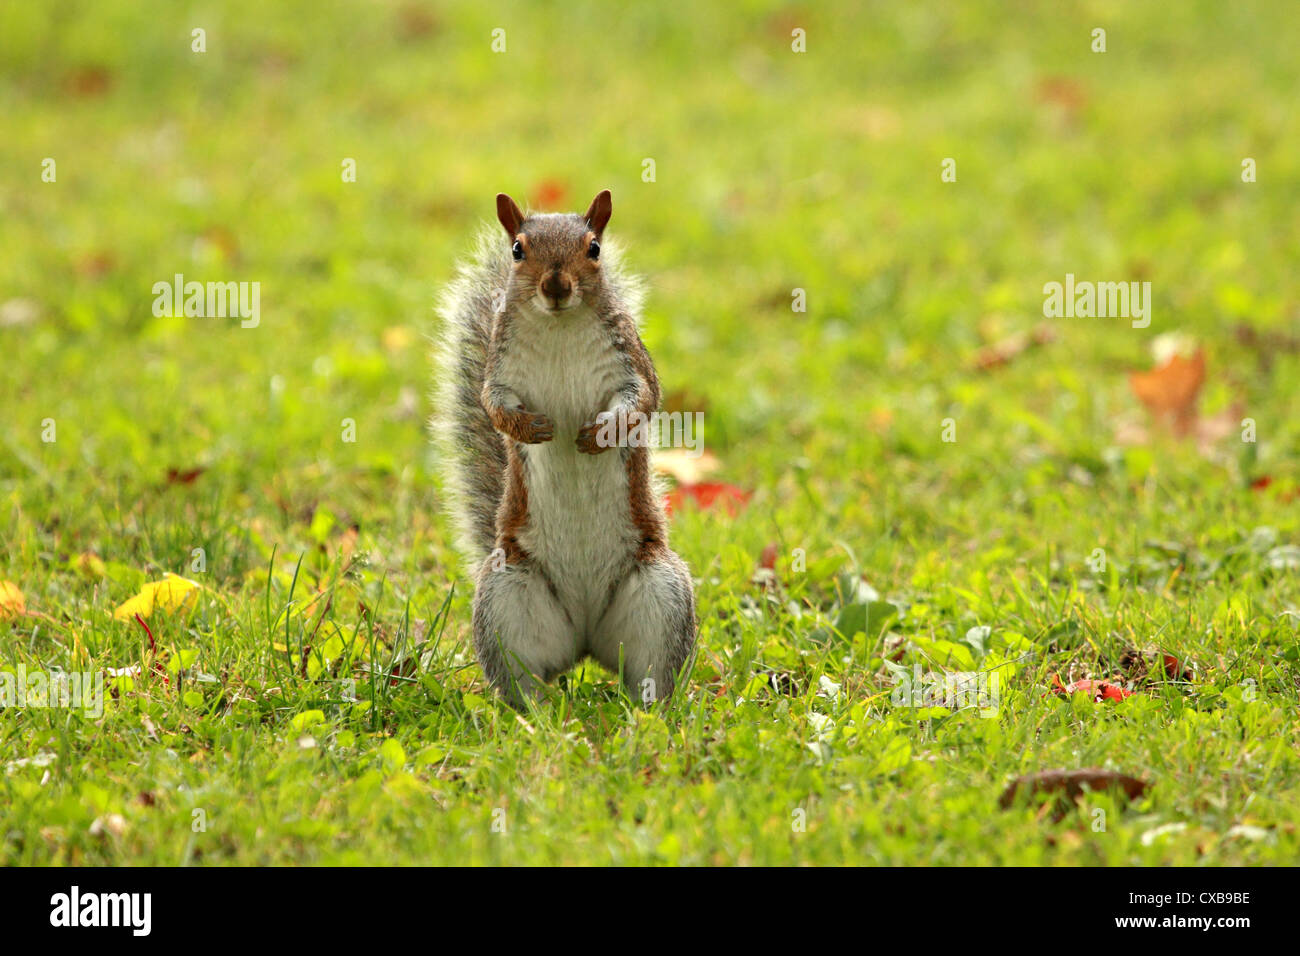 A curious eastern grey squirrel standing up. - Stock Image